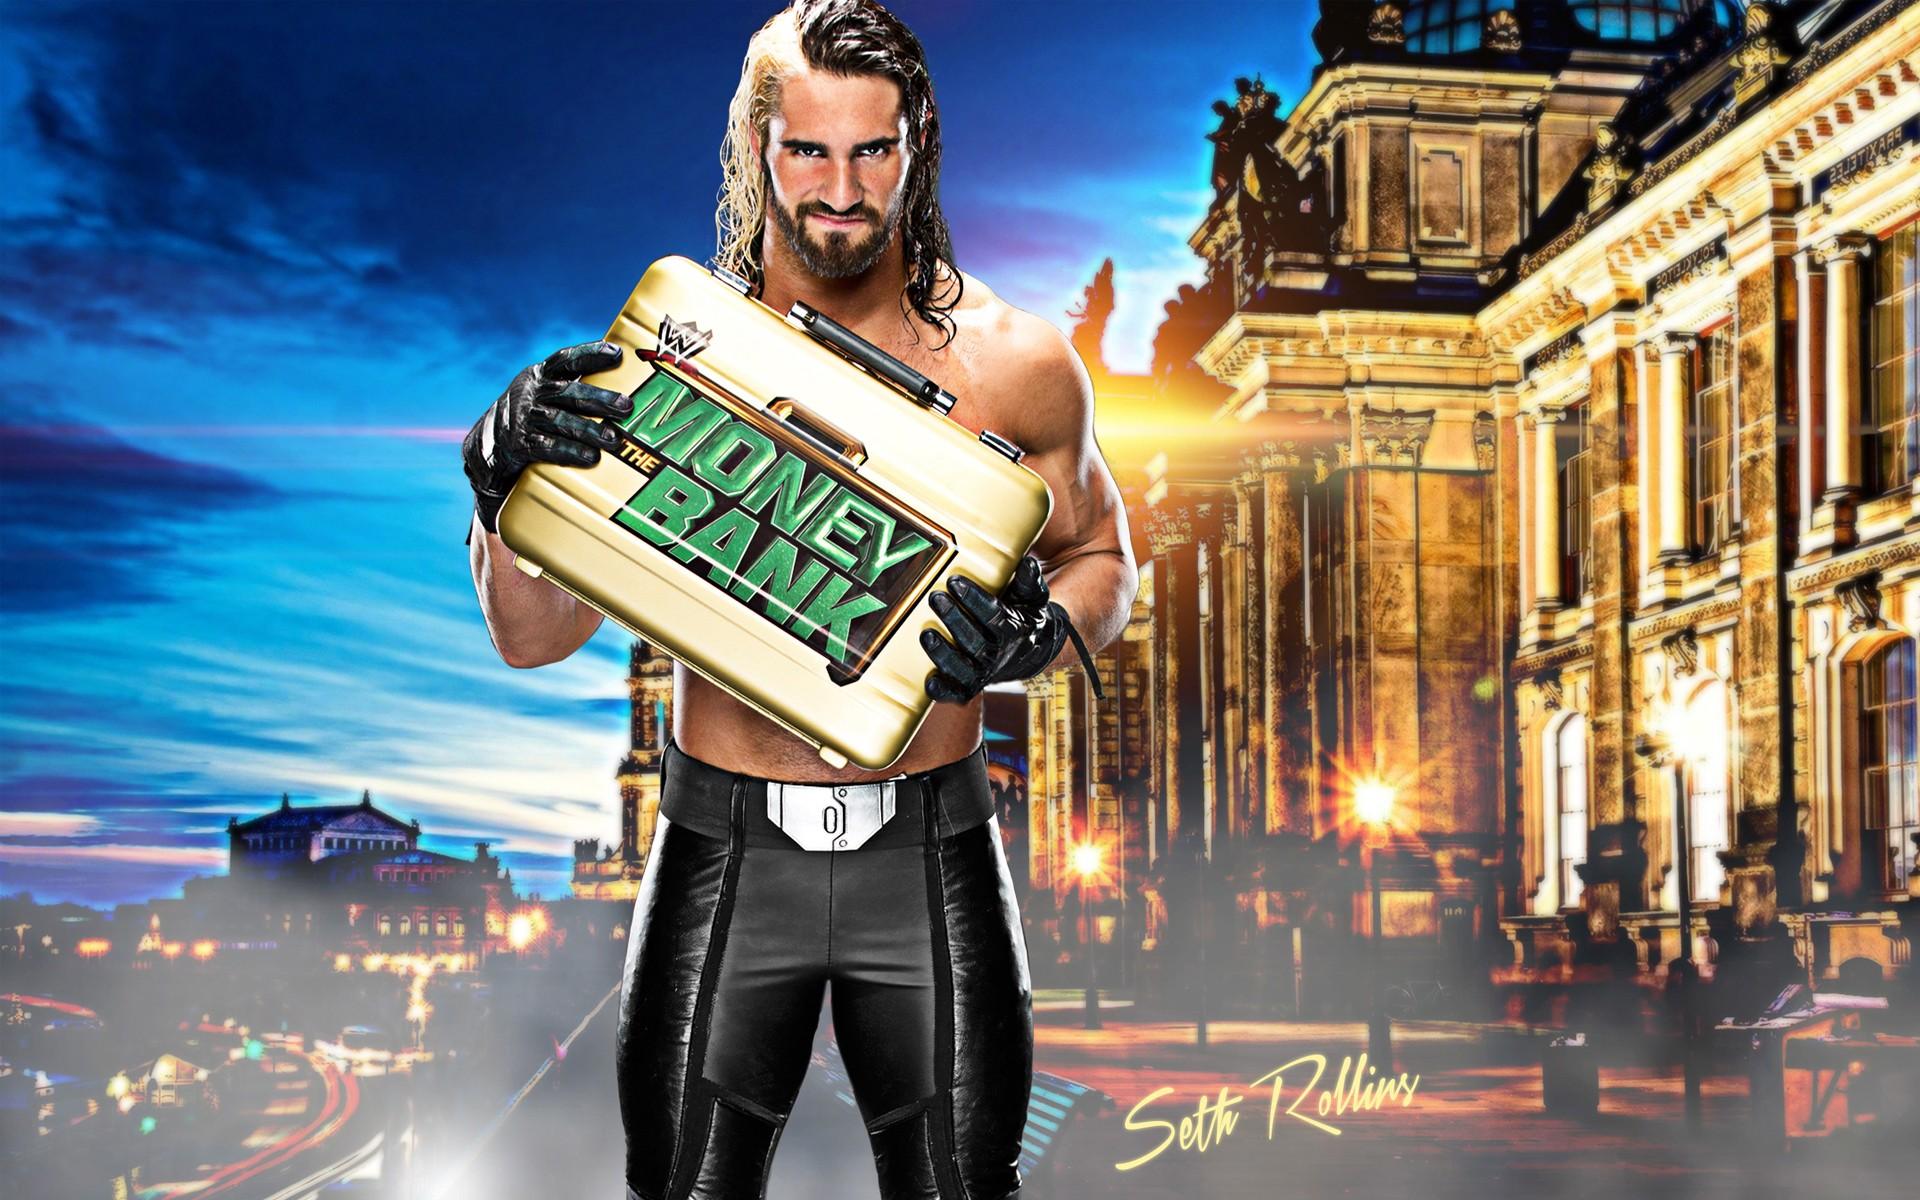 47 Seth Rollins Hd Wallpaper On Wallpapersafari